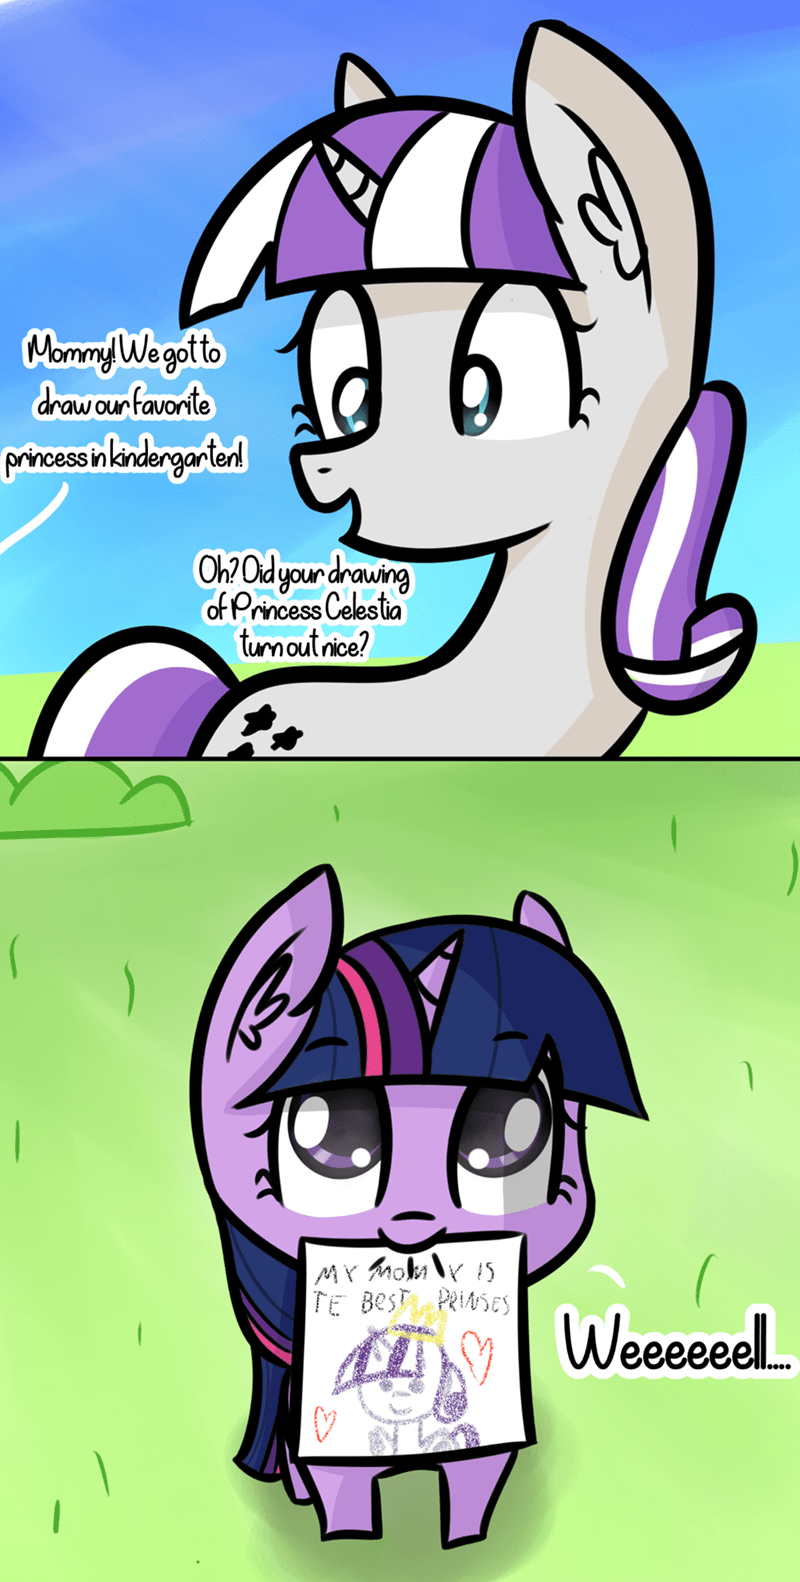 twilight sparkle twilight velvet artik comic - 9235398656